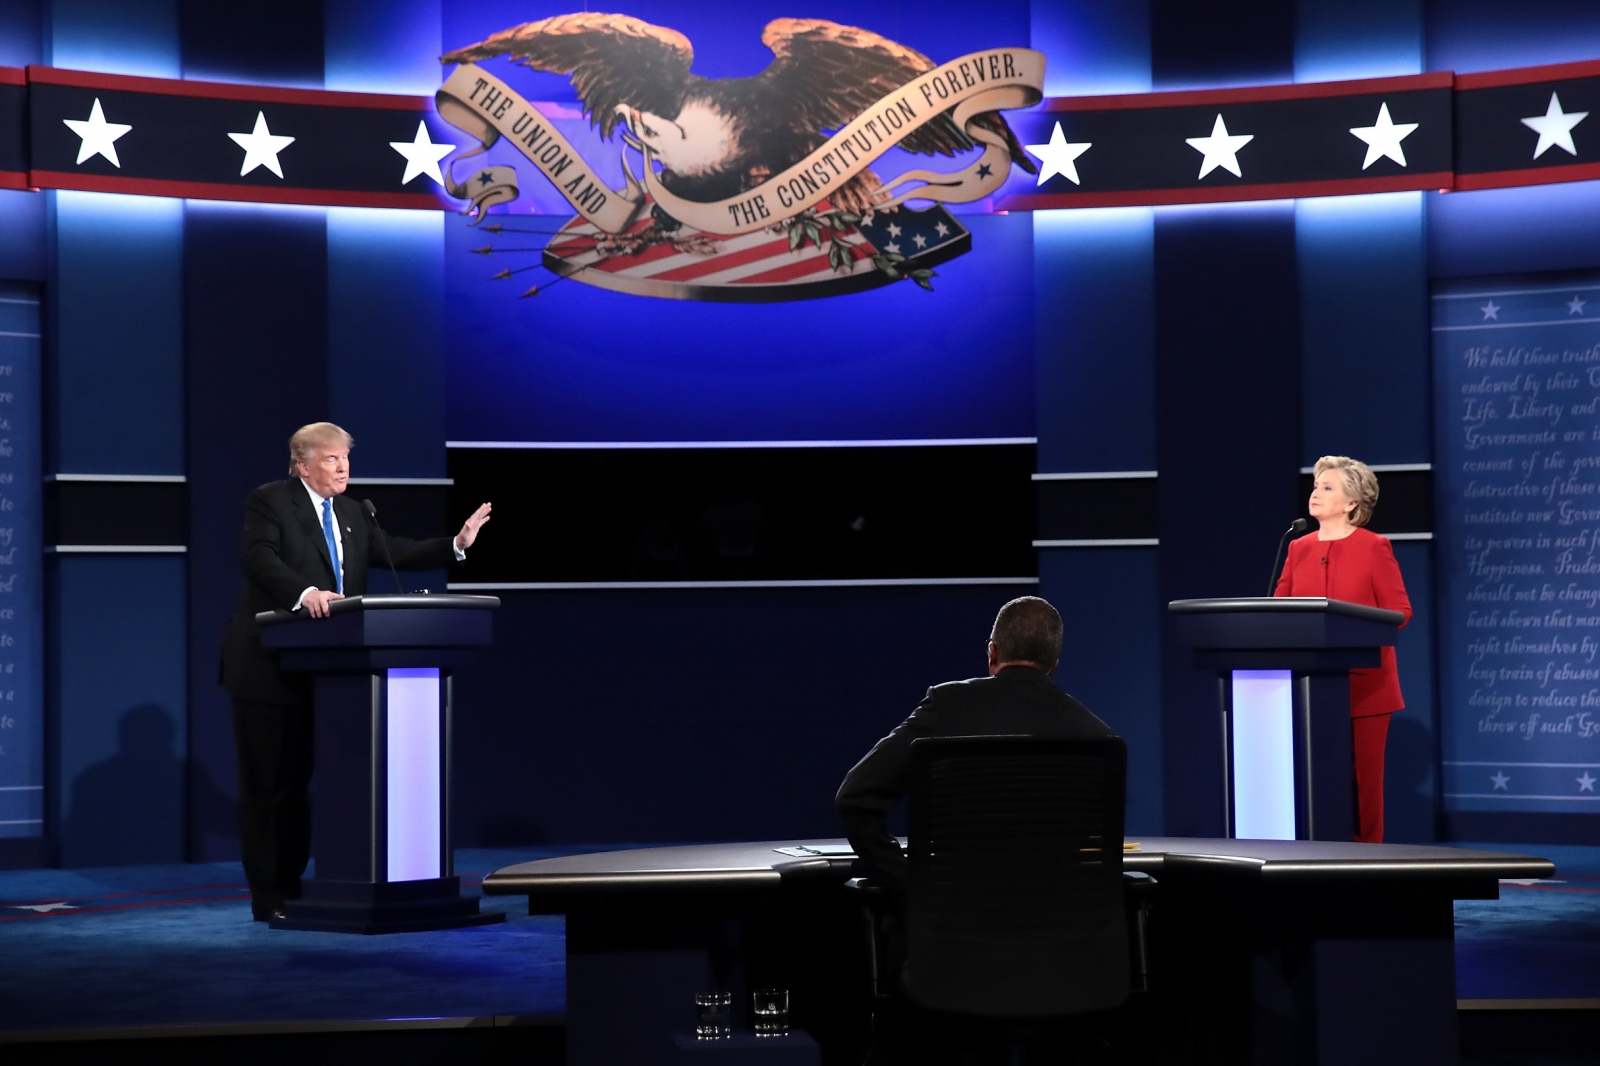 presidential debate - photo #8